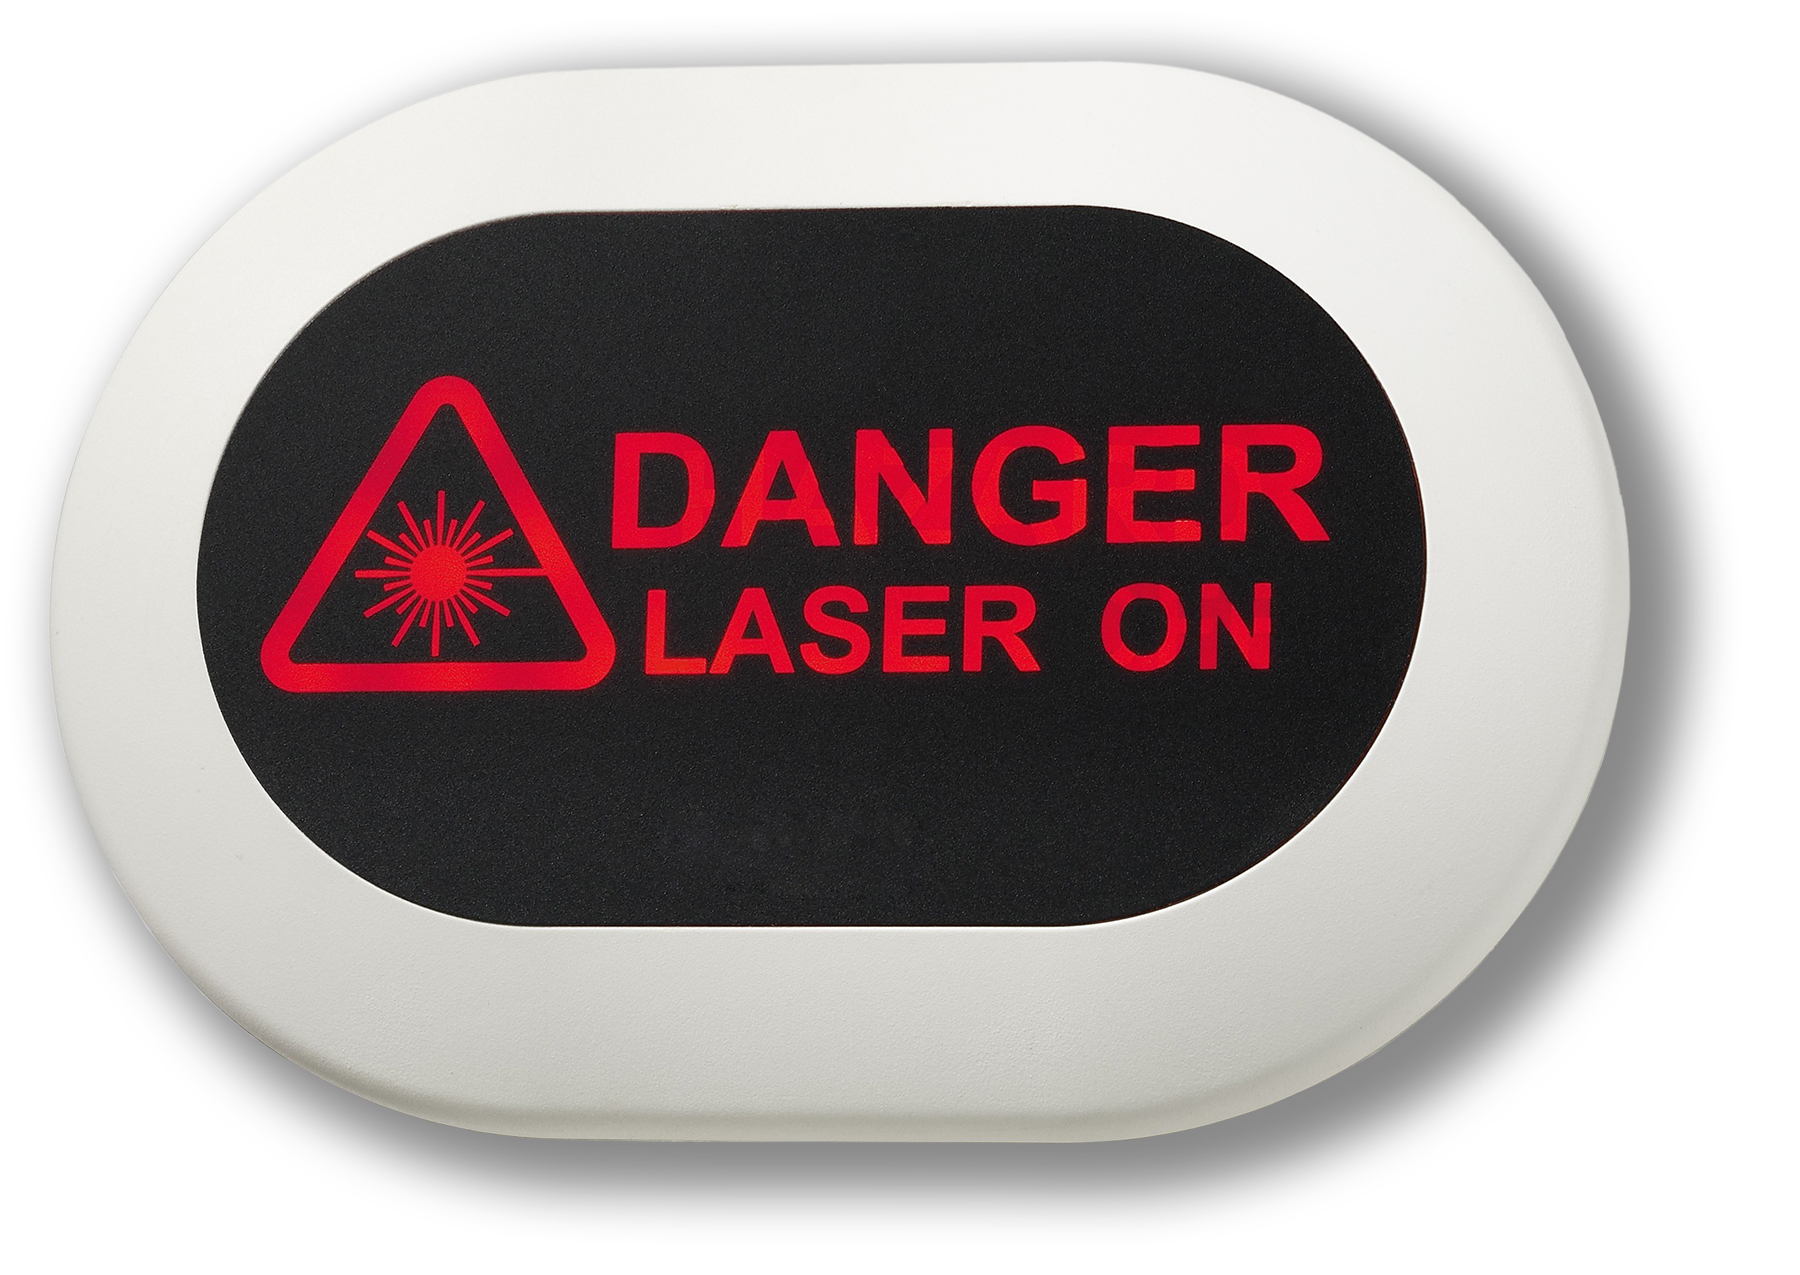 Laser Safety Signs Laservision Usa